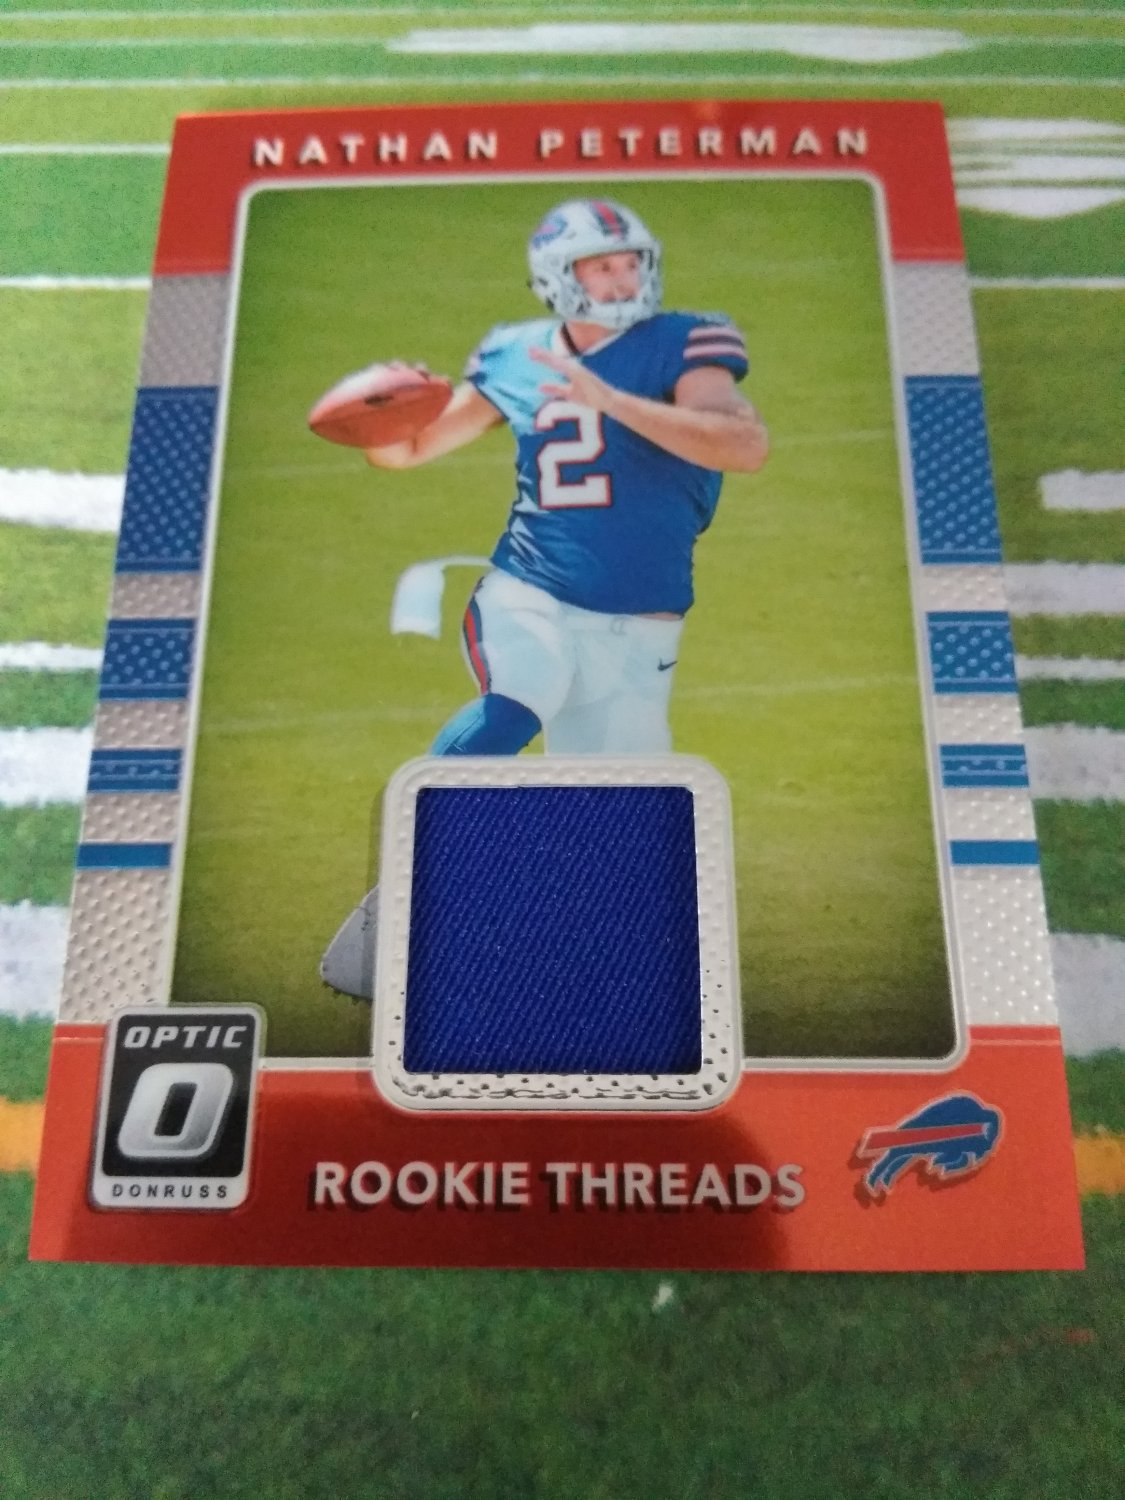 Rookie Threads Nathan Peterman